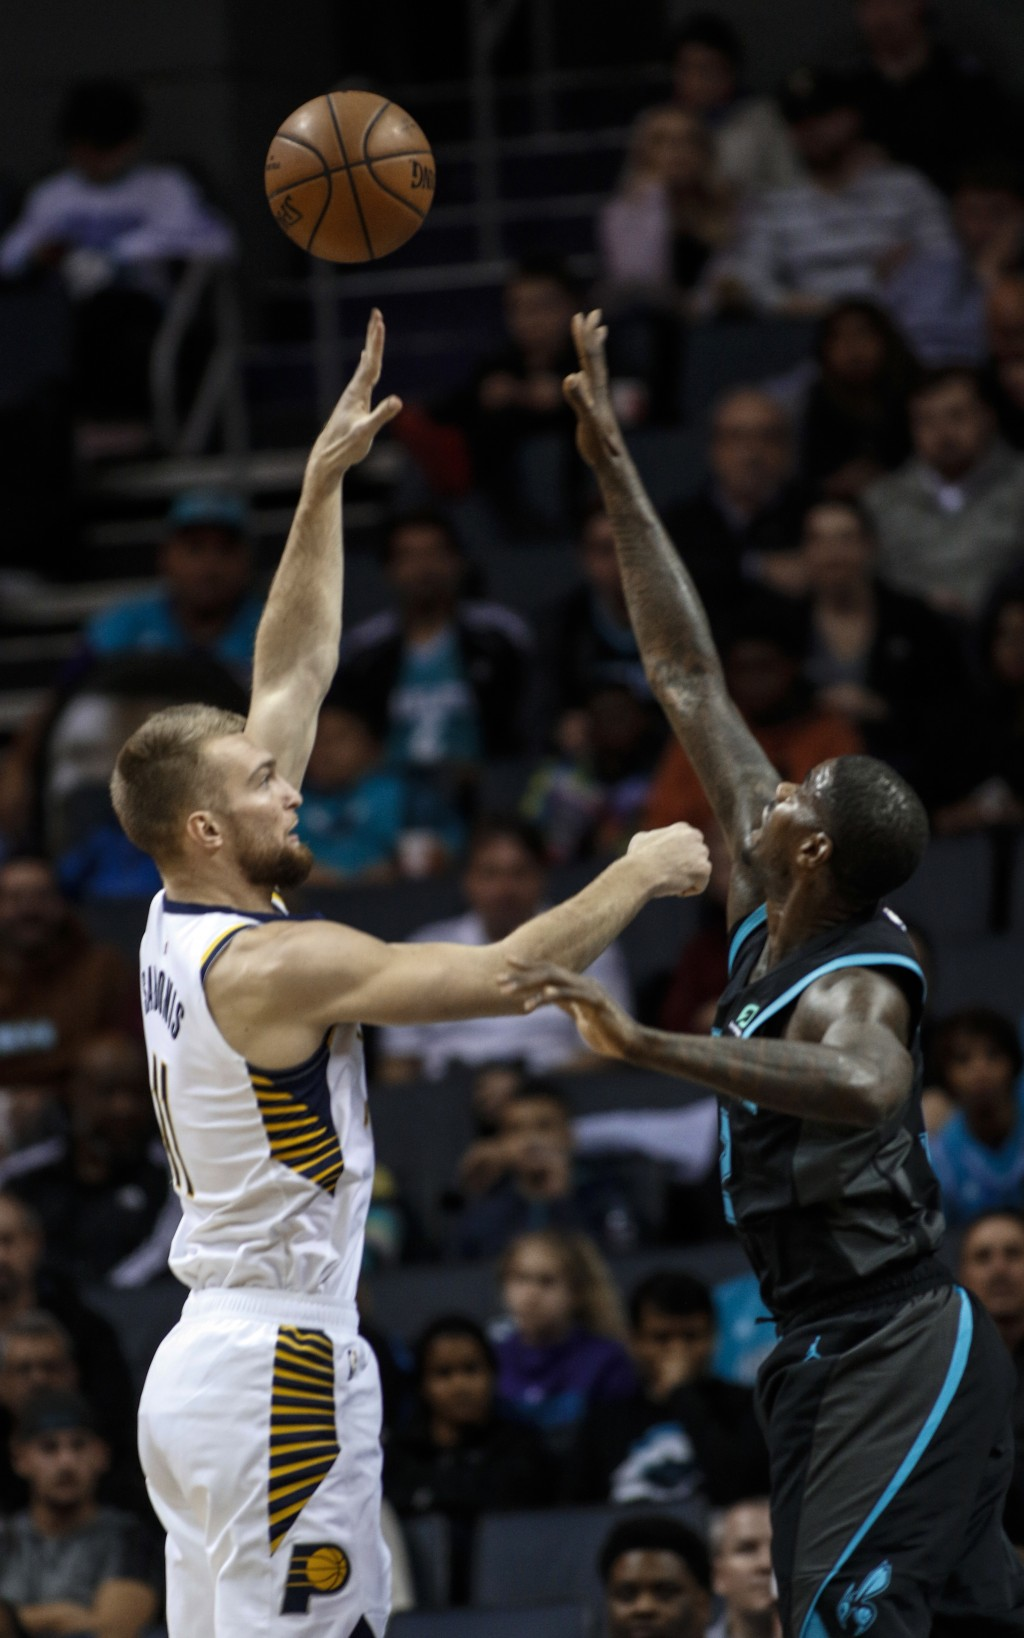 Indiana Pacers forward Damantas Sabonis, left, shoots over Charlotte Hornets forward Marvin Williams during the first half of an NBA basketball game i